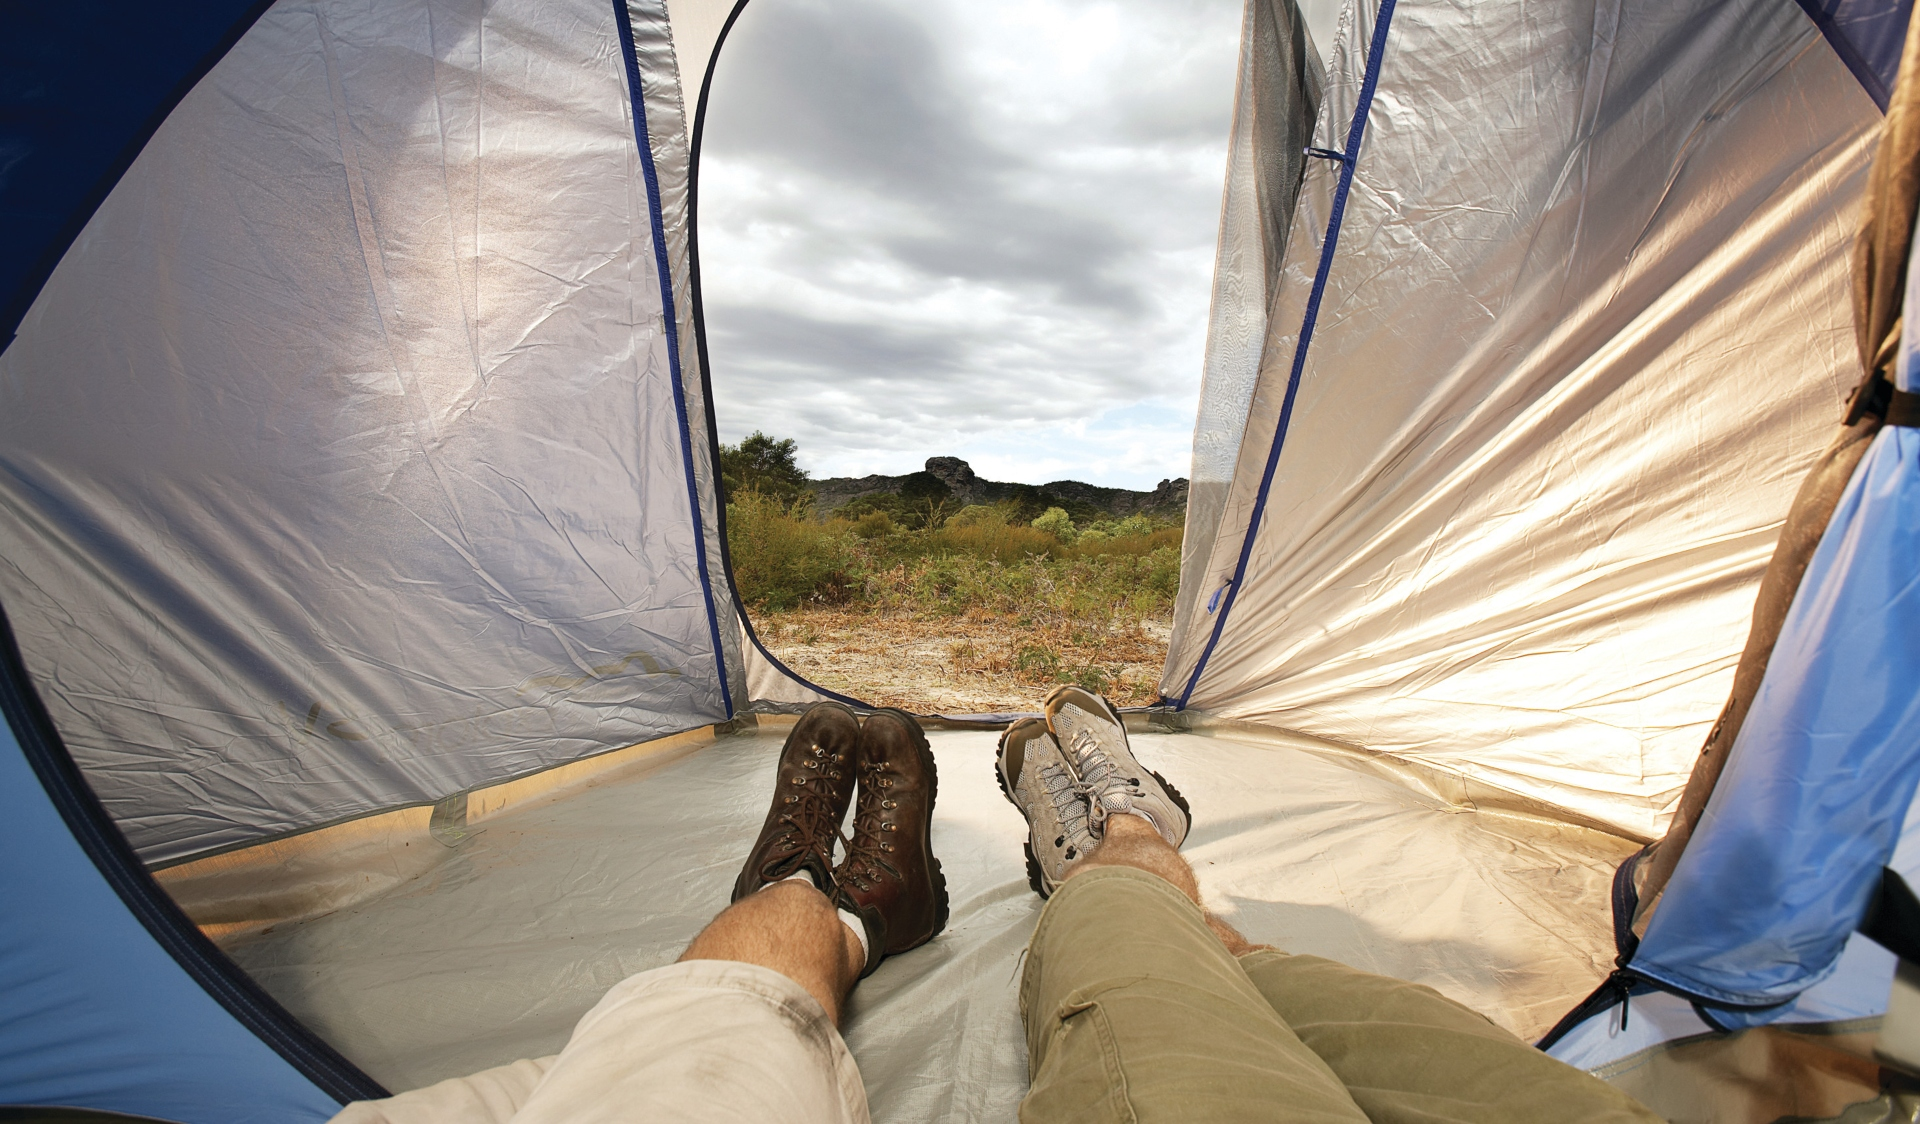 The view from inside a tent, looking out to the grassy landscape and cloudy sky.